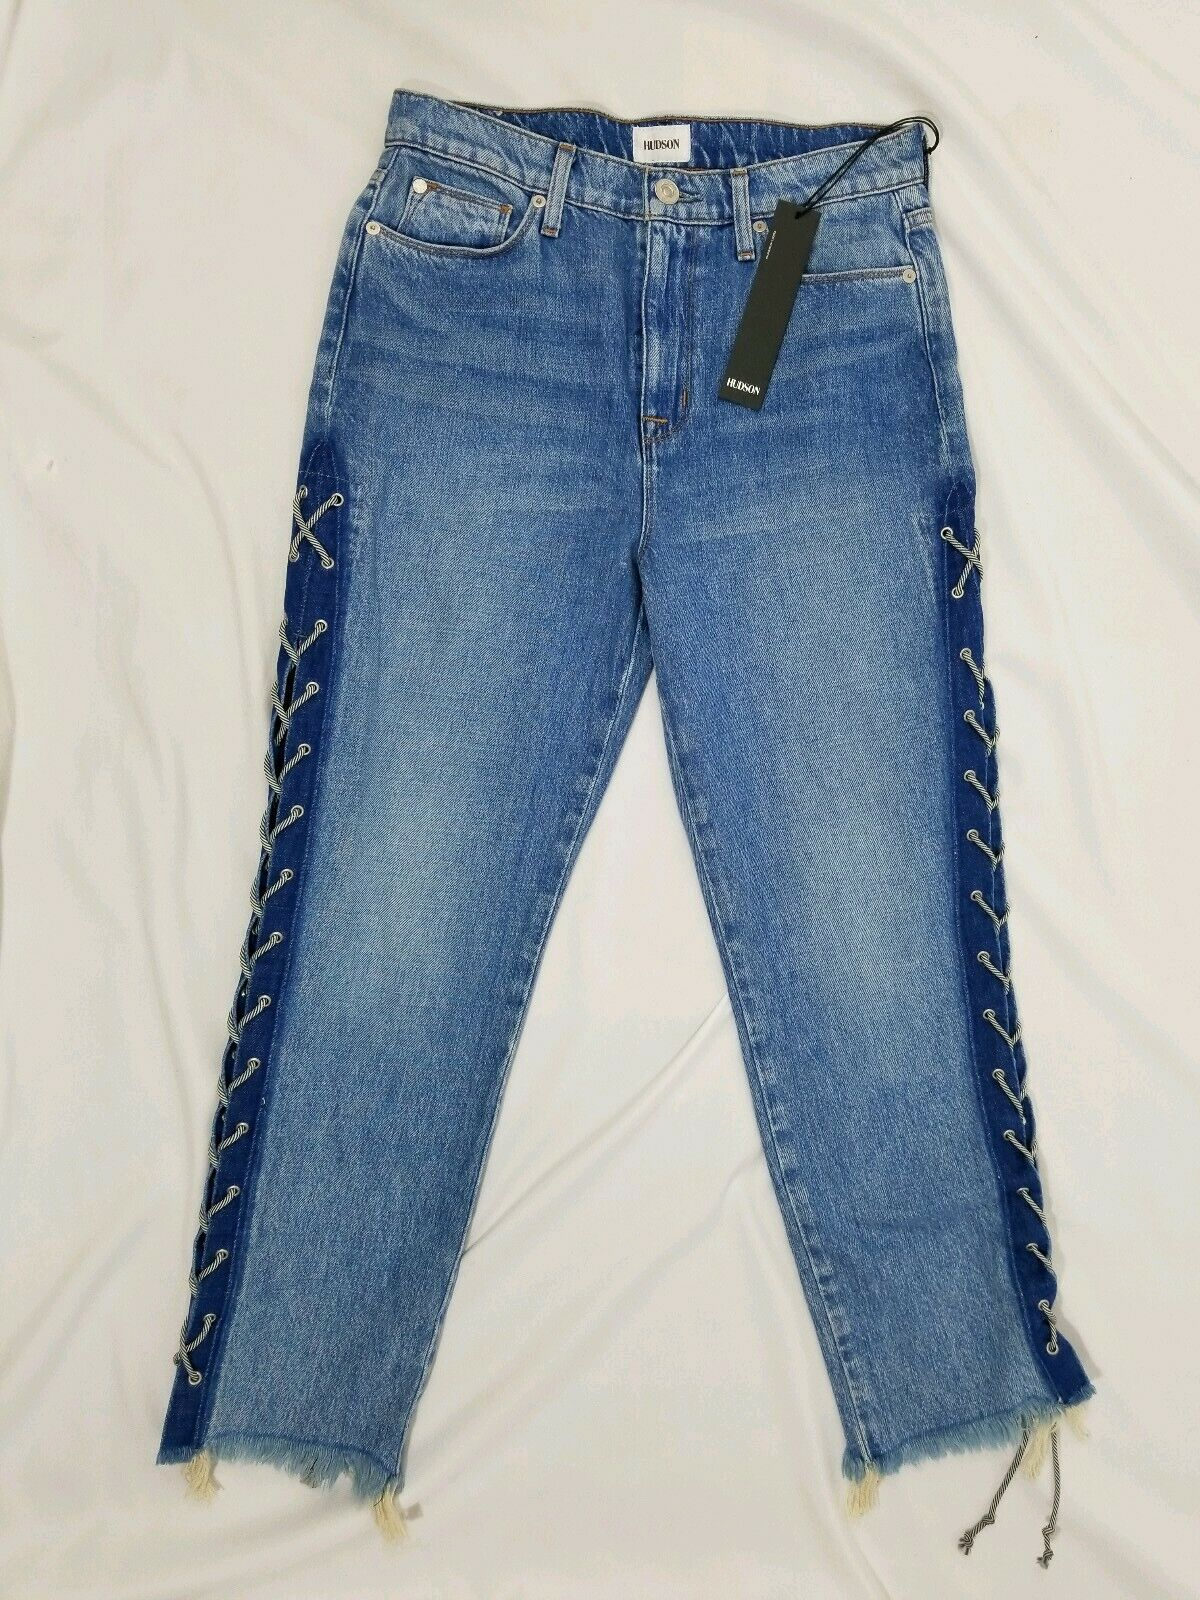 HUDSON High Rise Zoeey Lace Up Straight Crop Jeans Sz 29